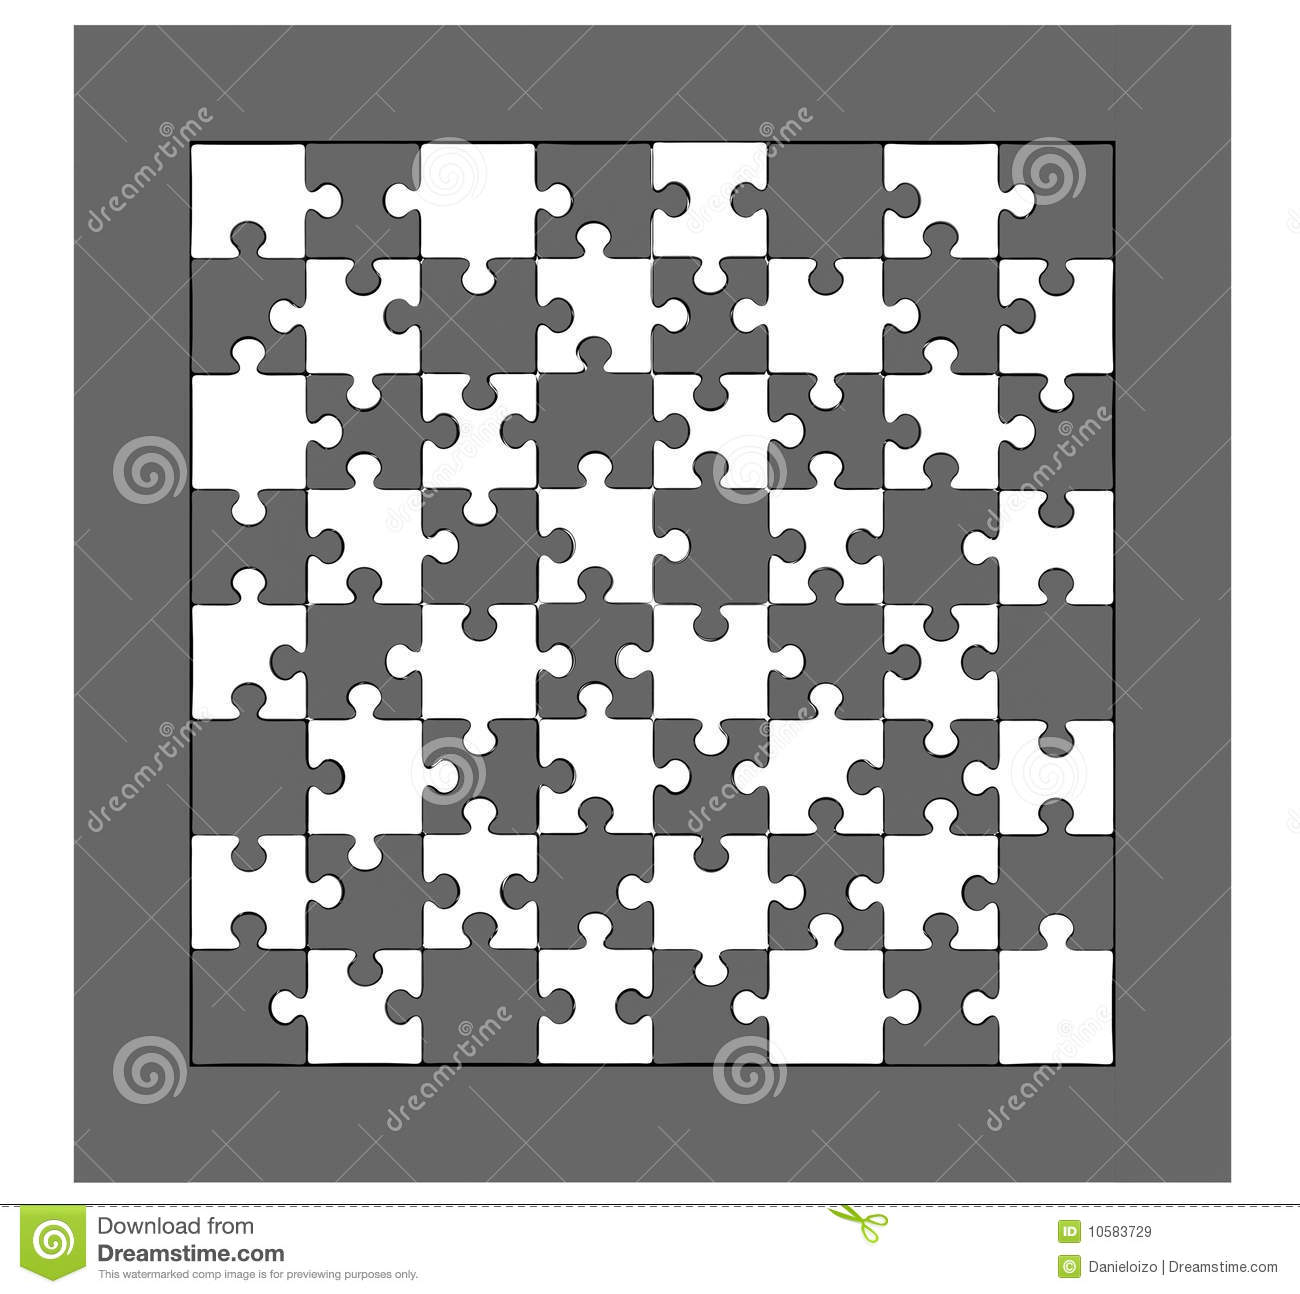 This is a photo of Lively Printable Chess Puzzles